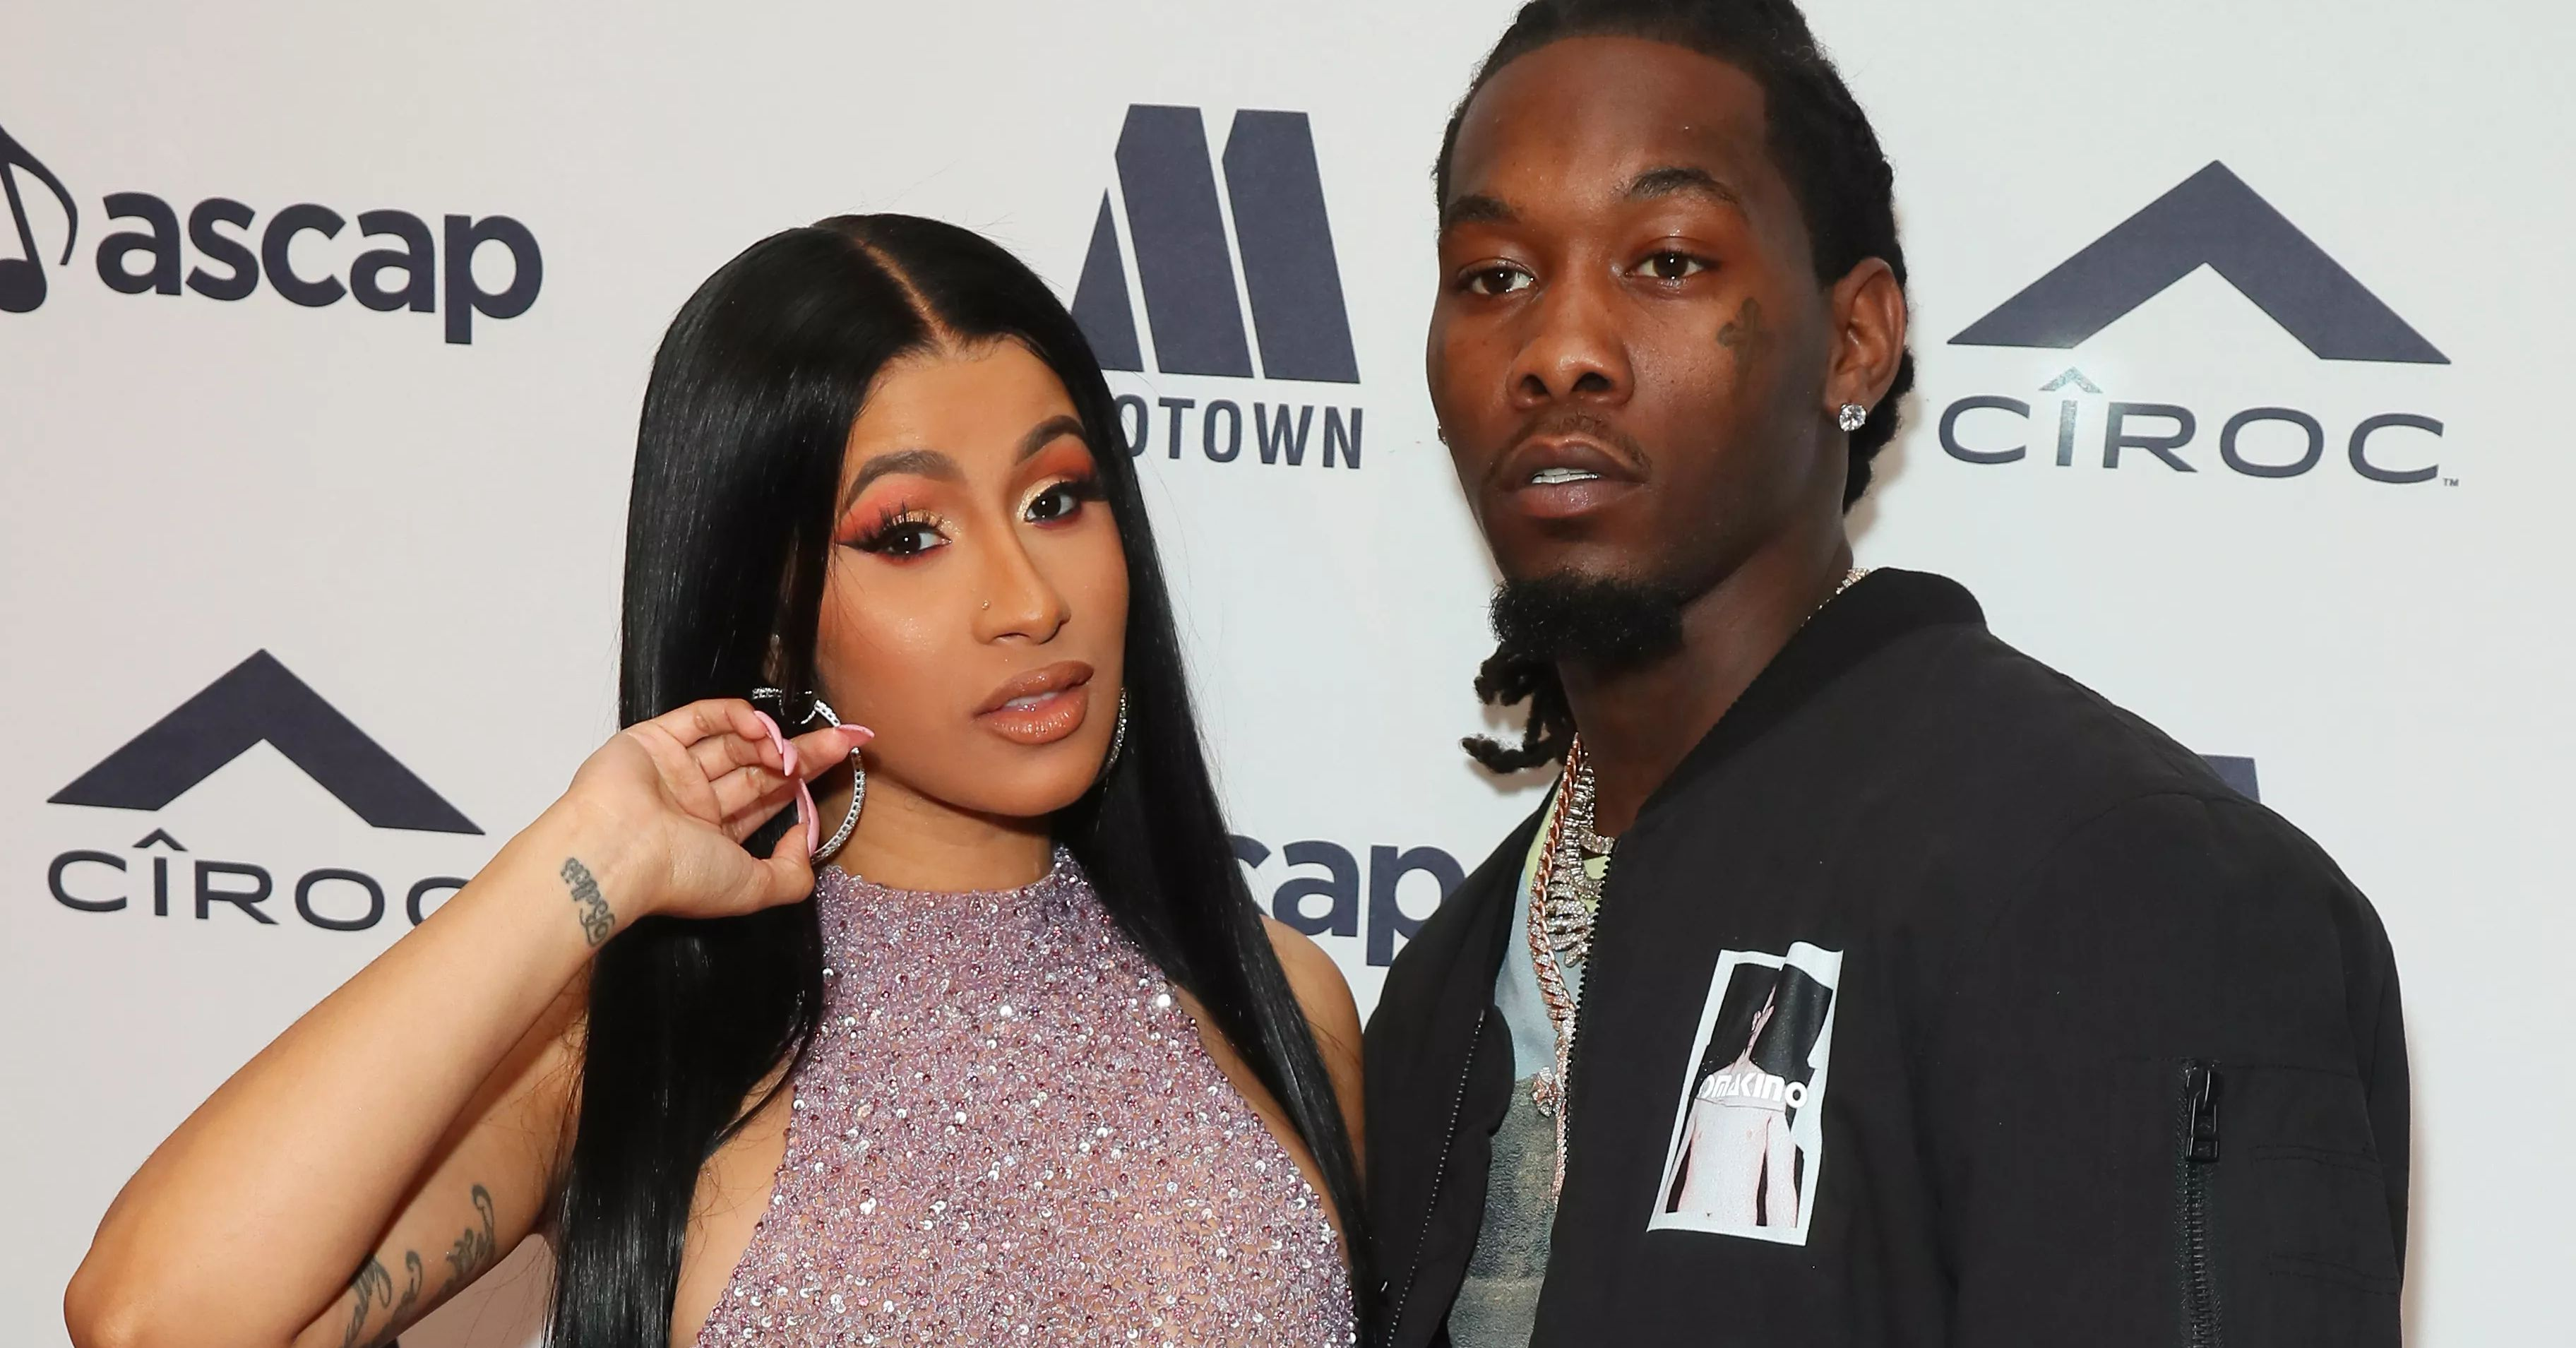 Migos Offset Husband Of Cardi B Arrested On Felony Gun: 'Migos' Rapper Offset Detained In Los Angeles For Possible